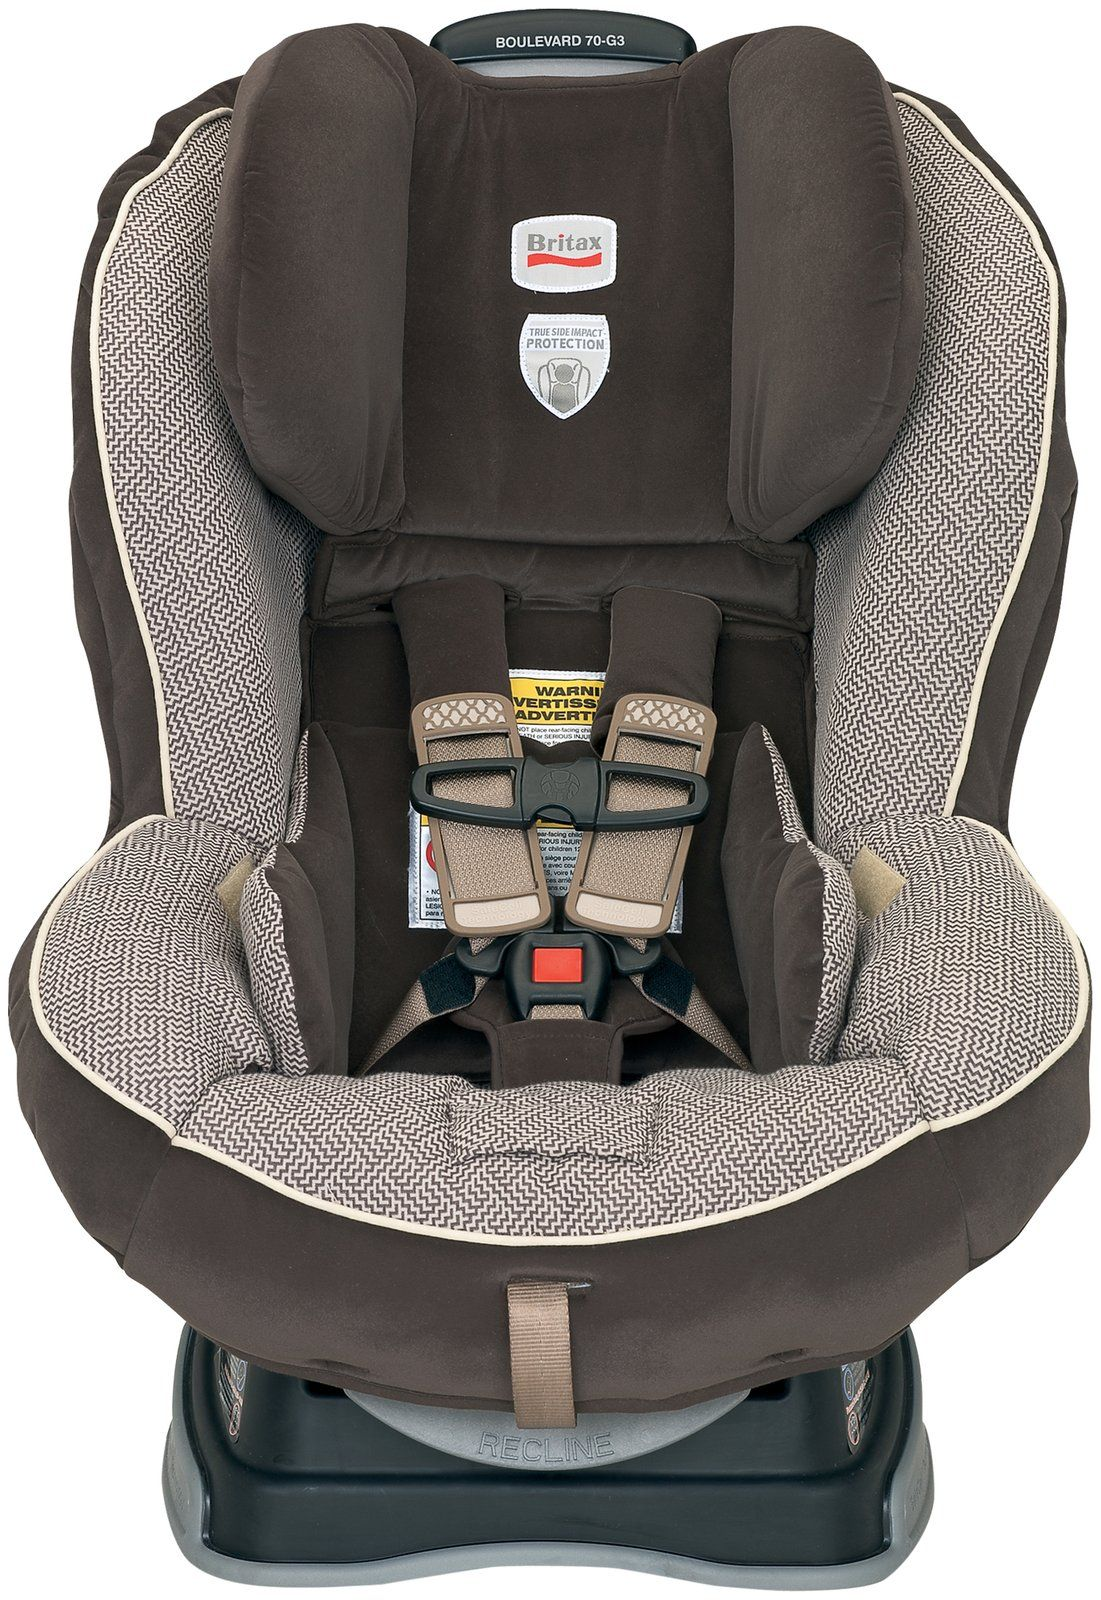 Britax Boulevard highest rated convertible car seat on